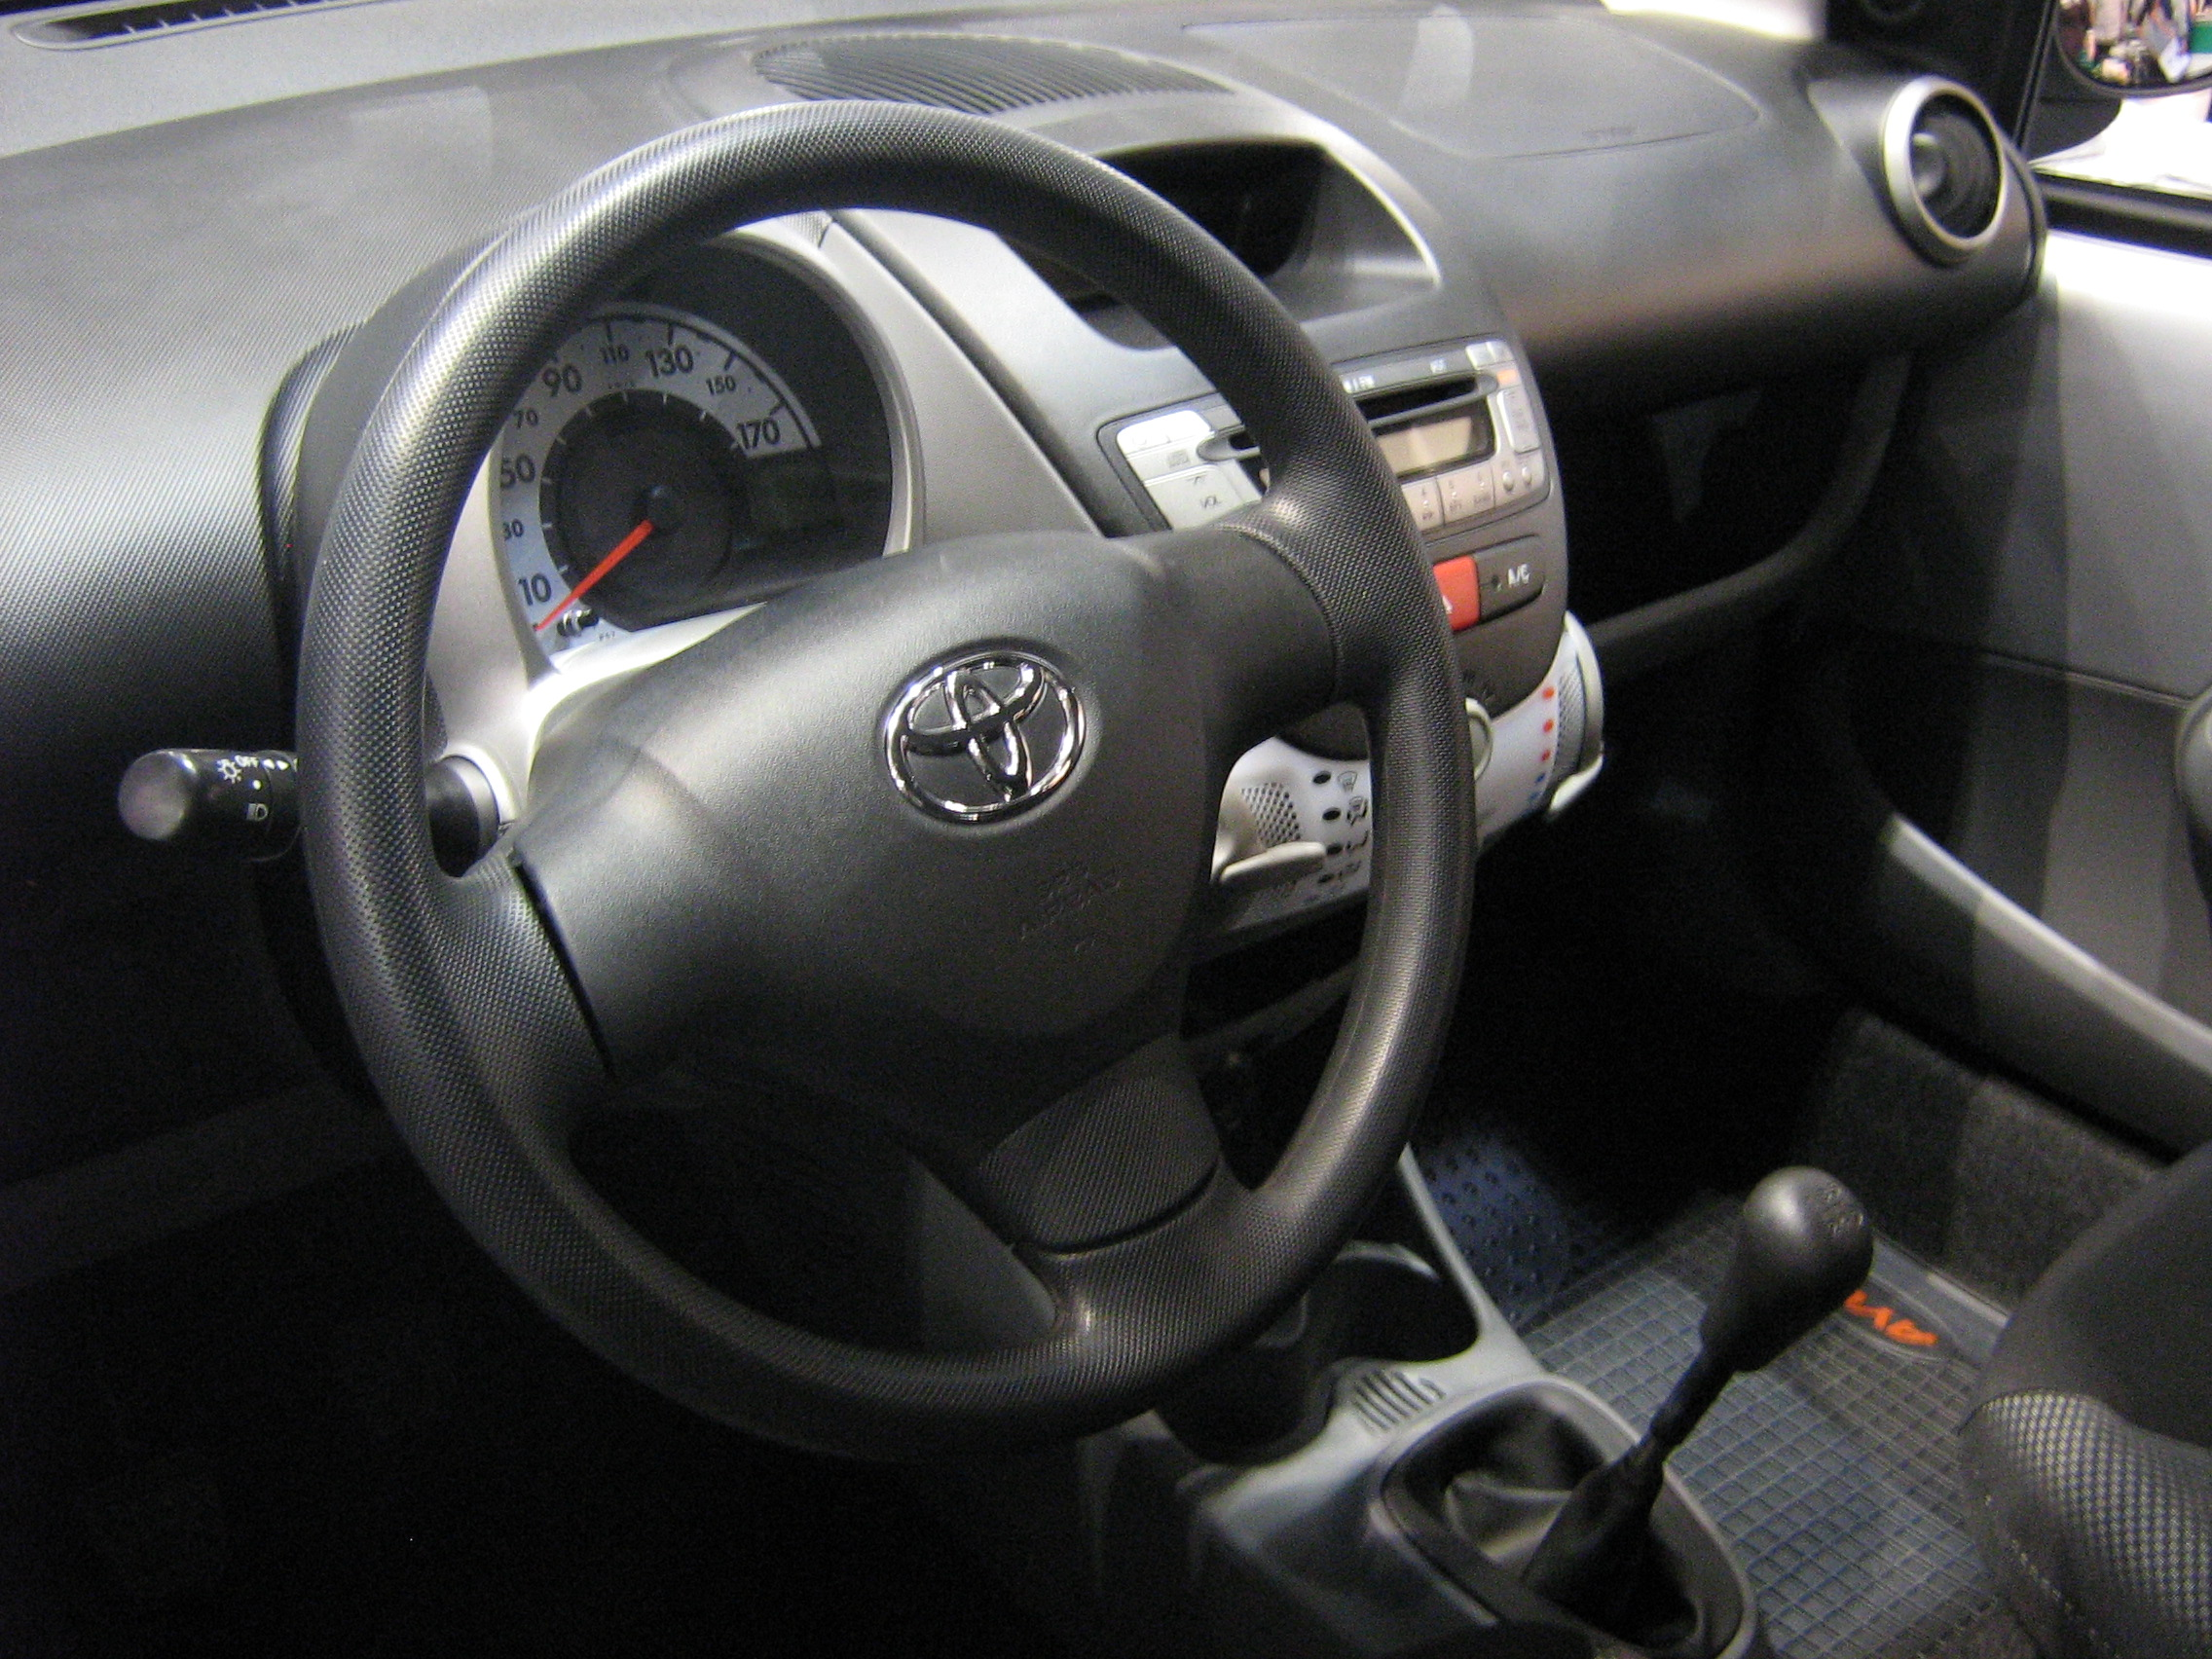 Datei:Toyota Aygo 5D Facelift interior - TTM 2009.jpg – Wikipedia